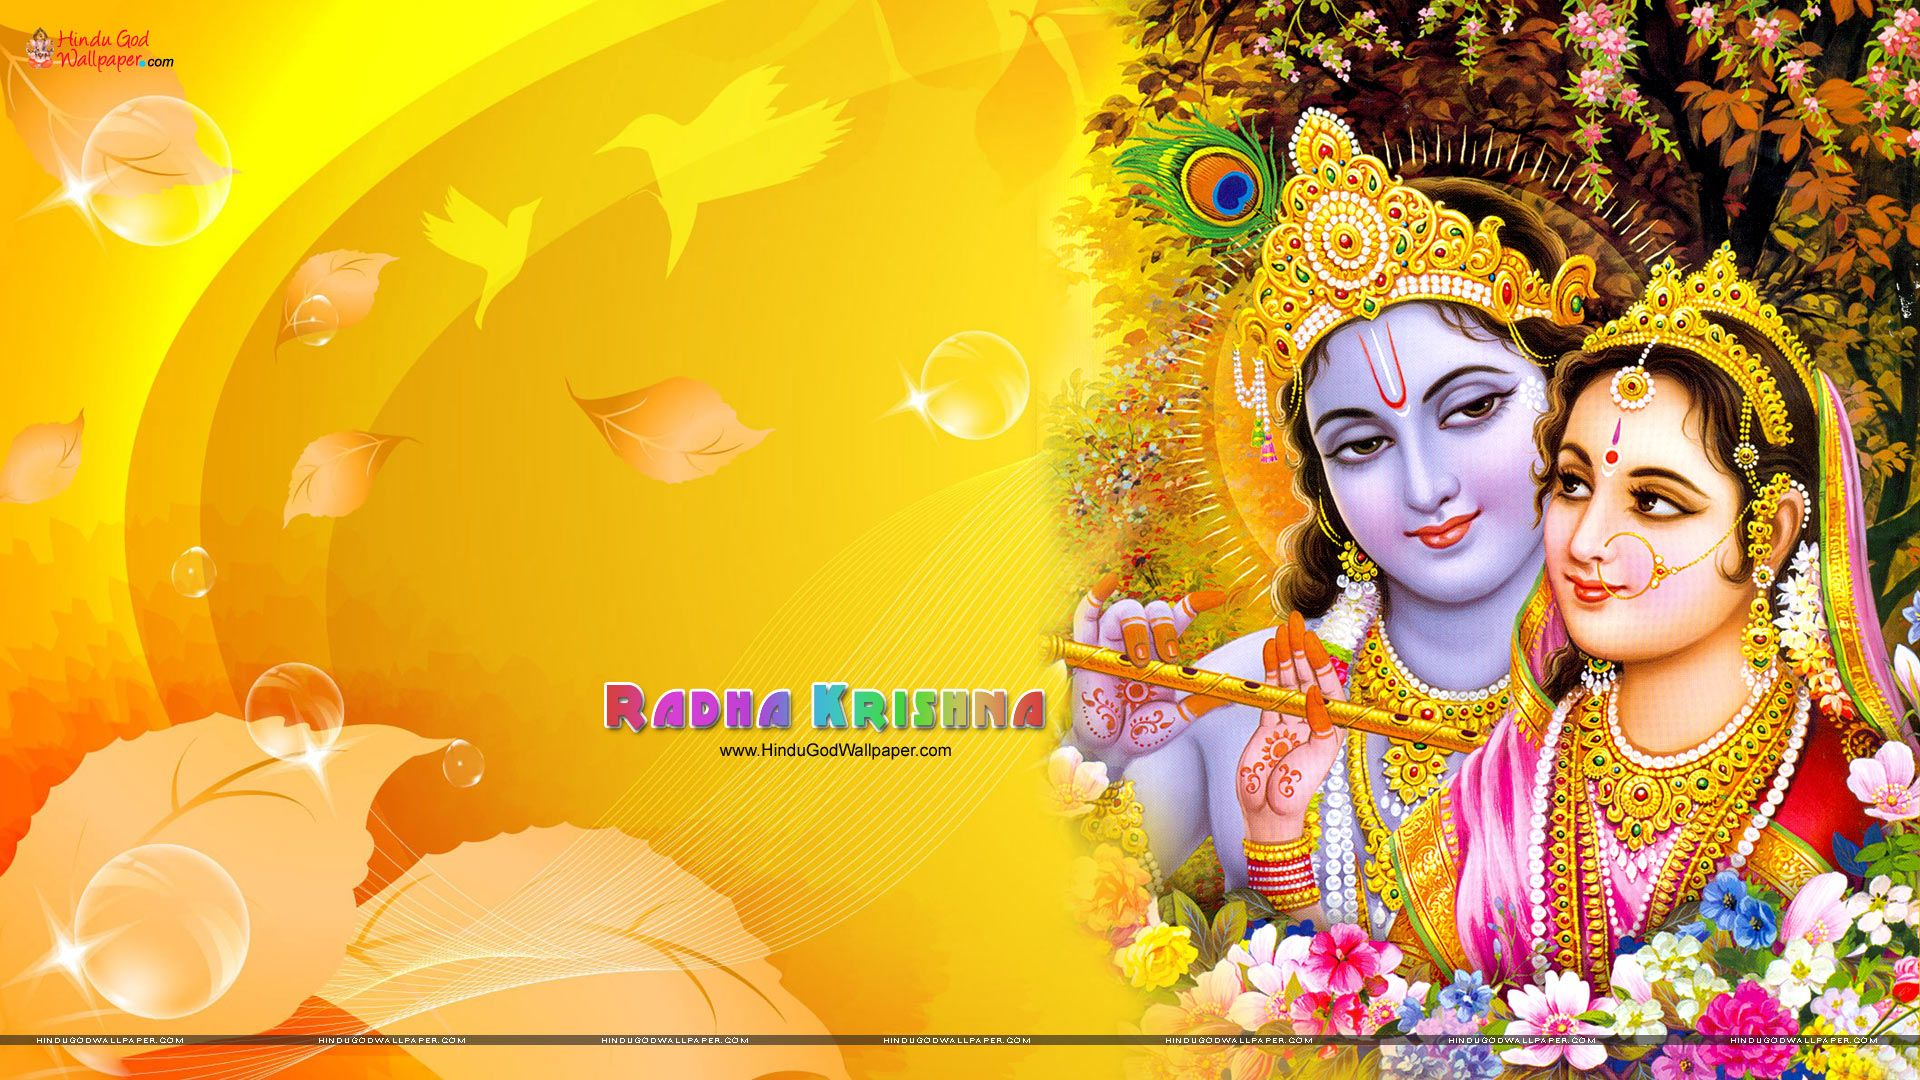 Radha Krishna Wallpaper Hd Full Size Download Radha Krishna Krishna Wallpaper Radha Krishna Wallpaper Radhe Krishna Wallpapers